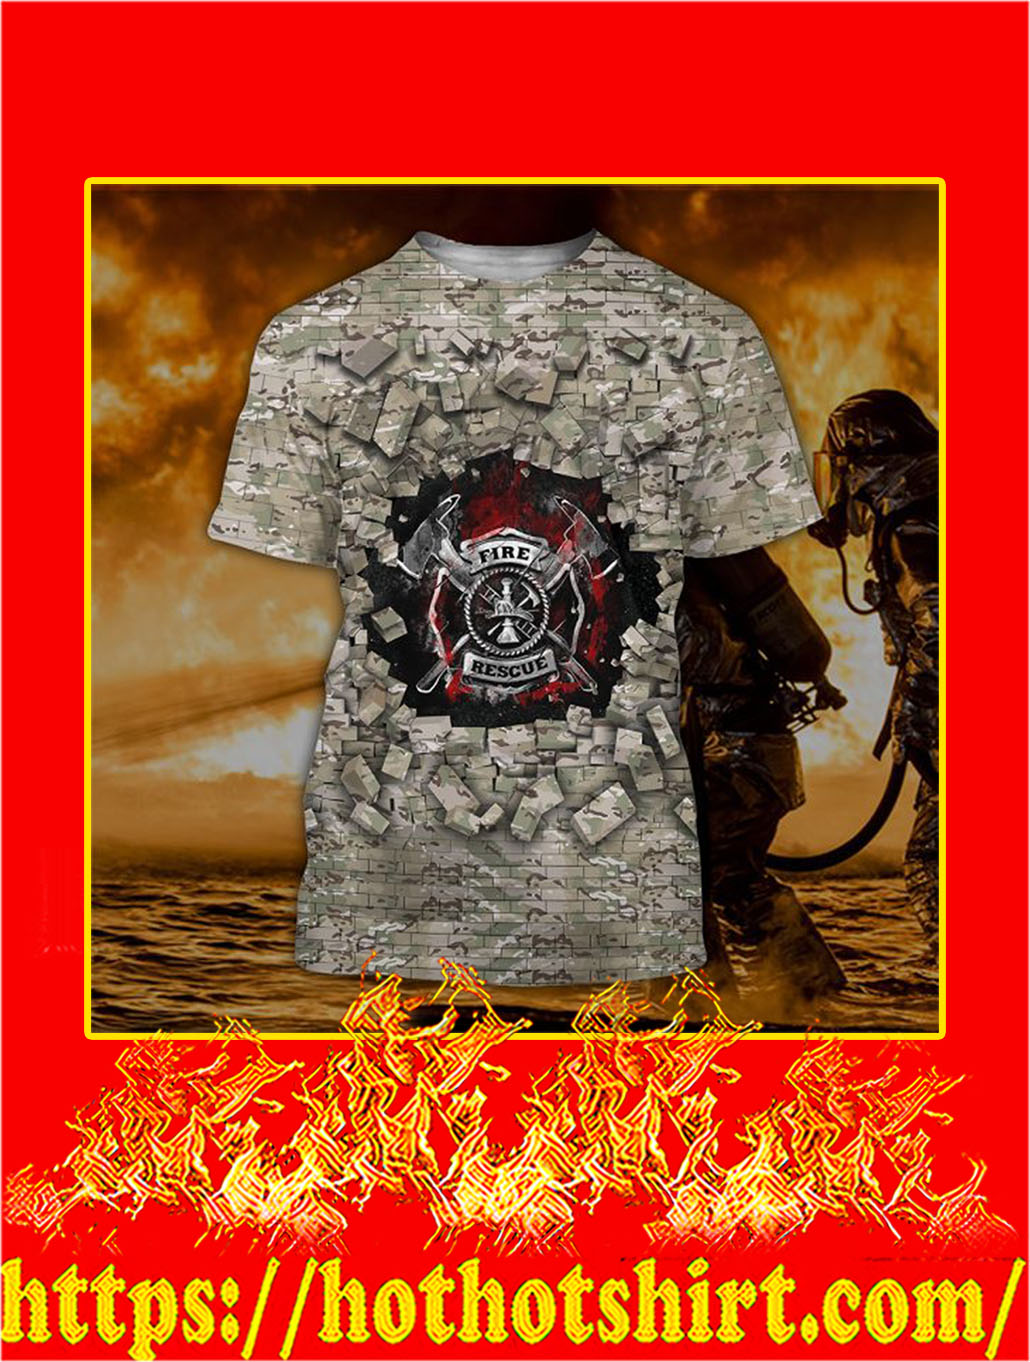 3D Printed Firefighter Camo Wall Clothing T-shirt